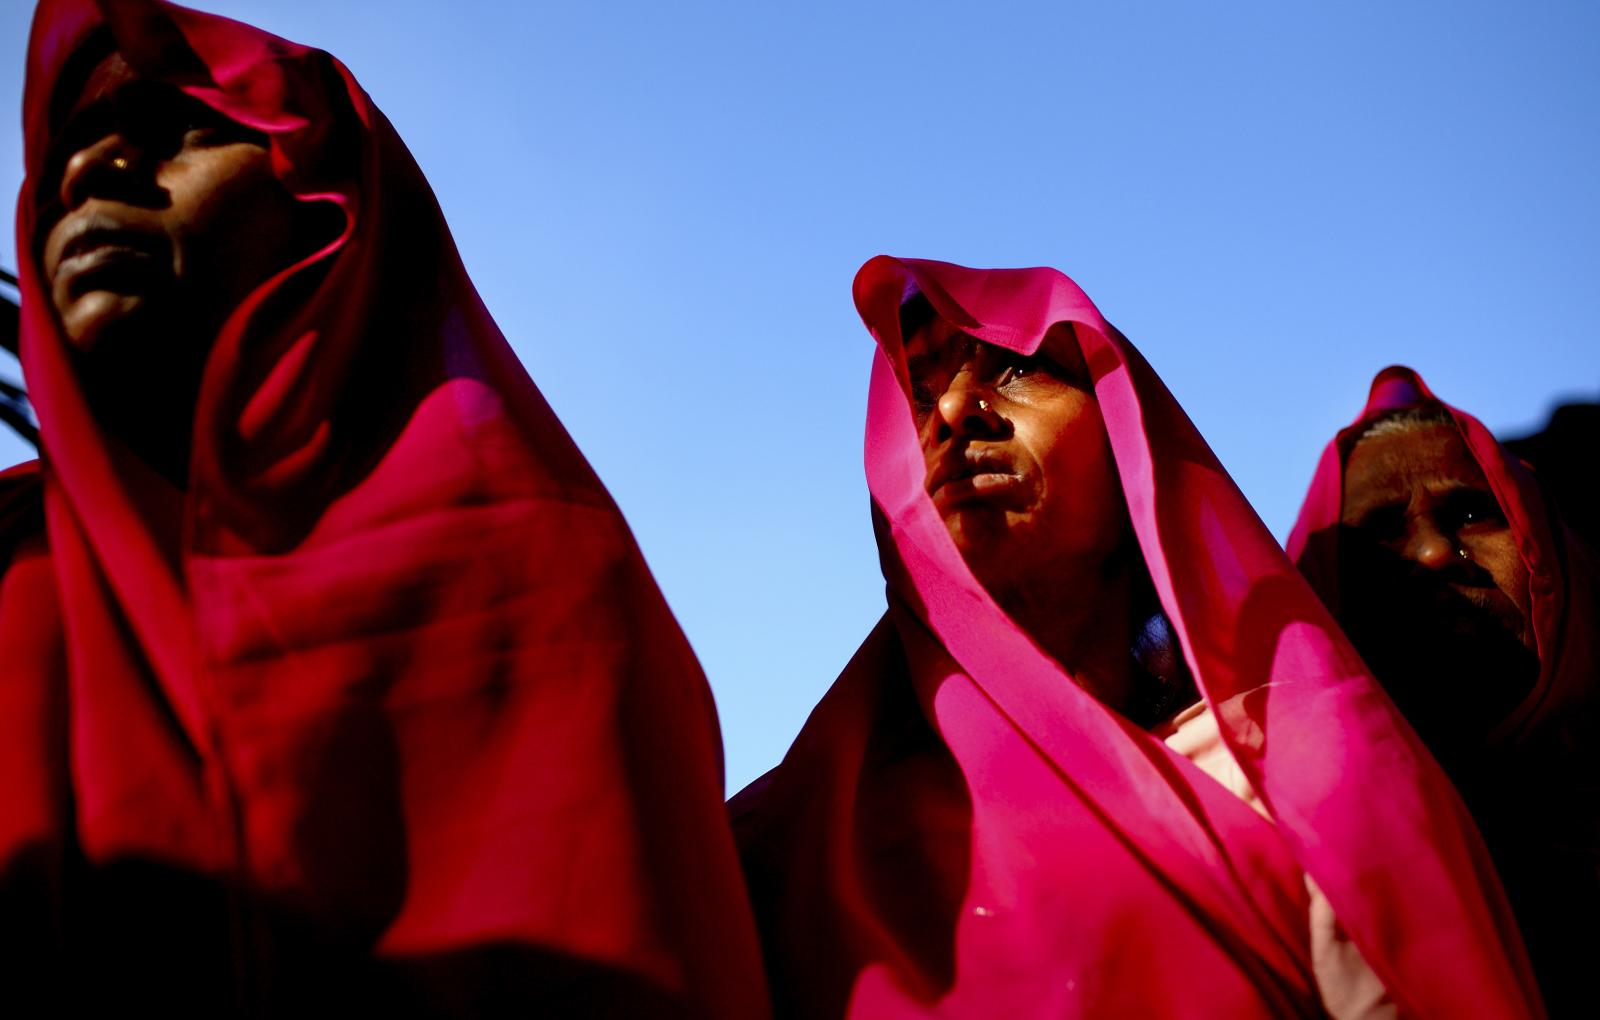 Members of Gulabi Gang dressed in their distinctive pink saris. Photo credit: G. M. B. Akash / Panos